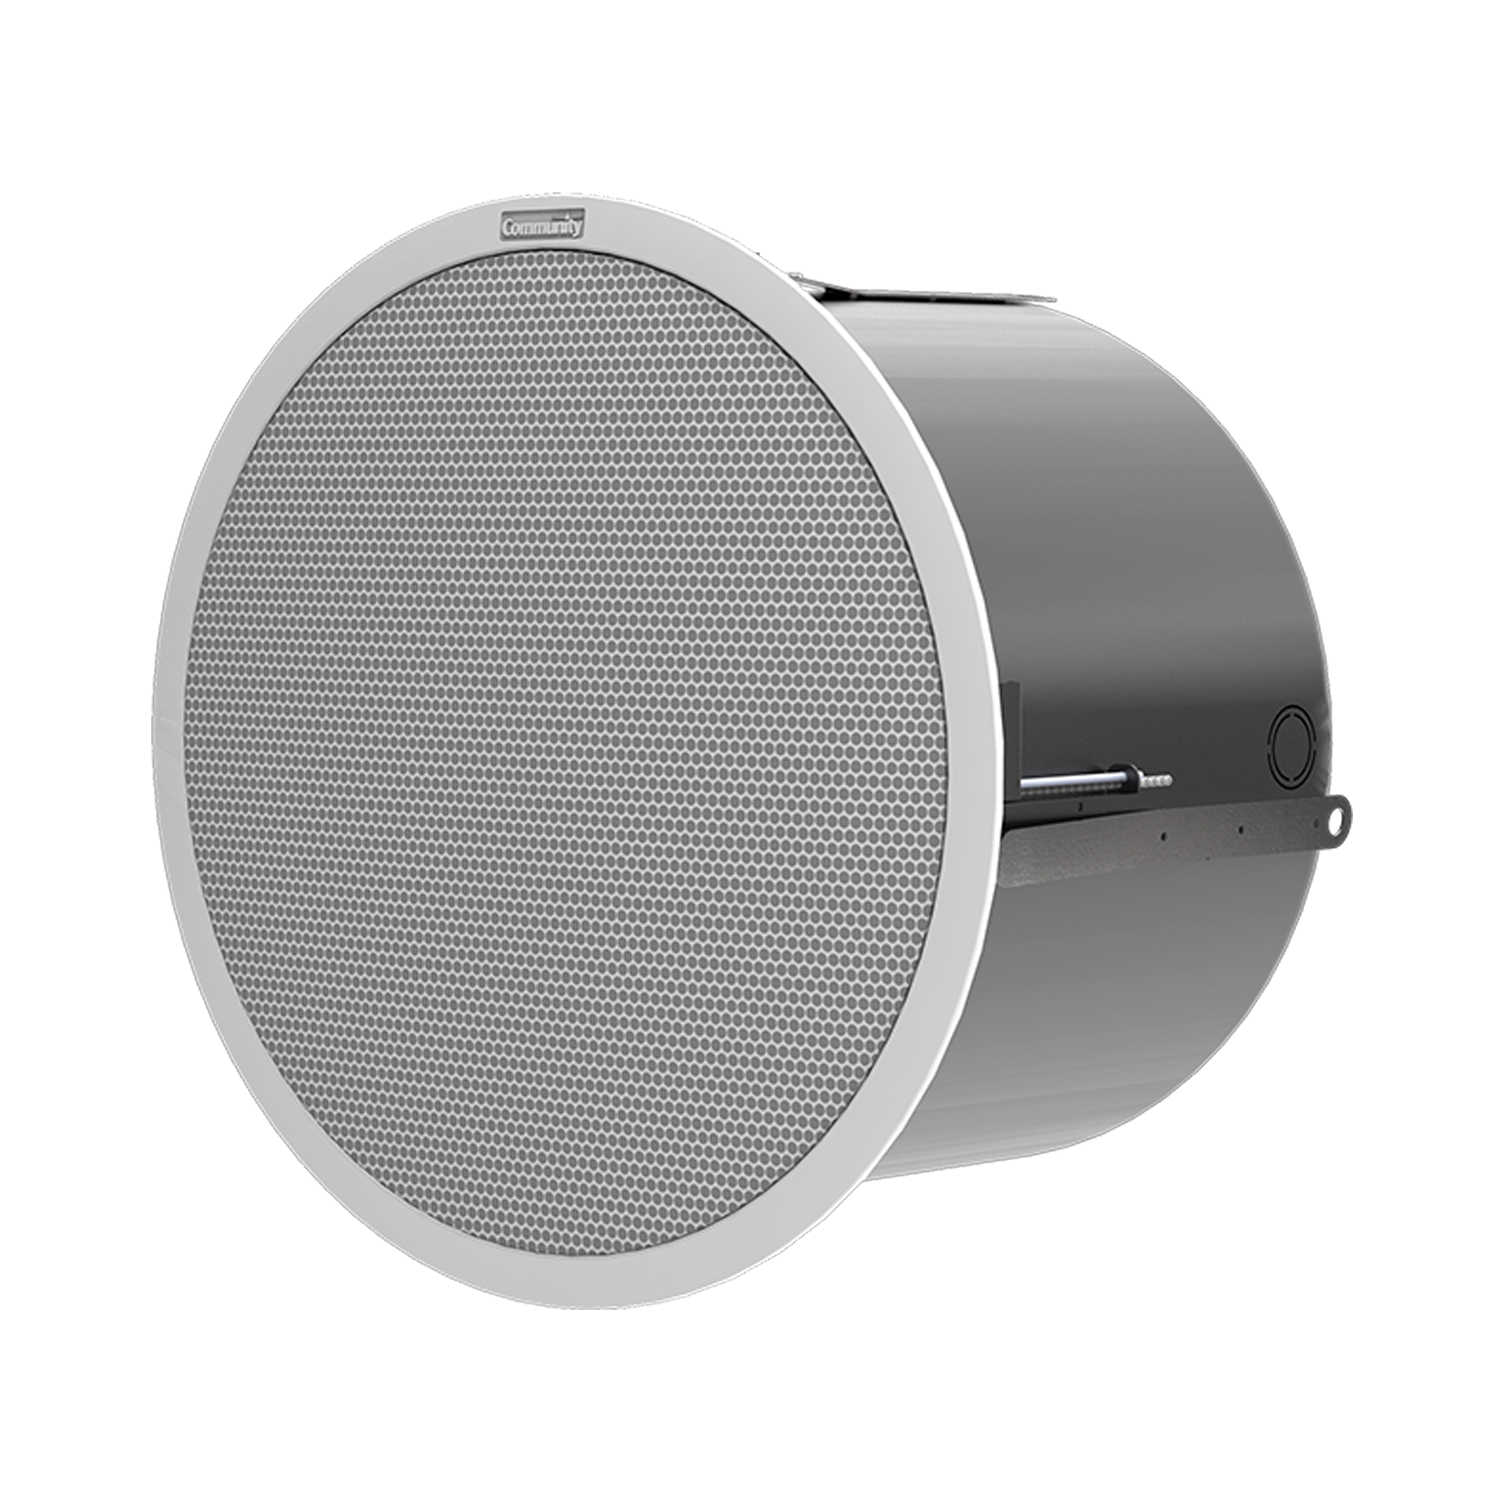 D10 10-inch High Output High Quality Two-Way Ceiling Loudspeaker